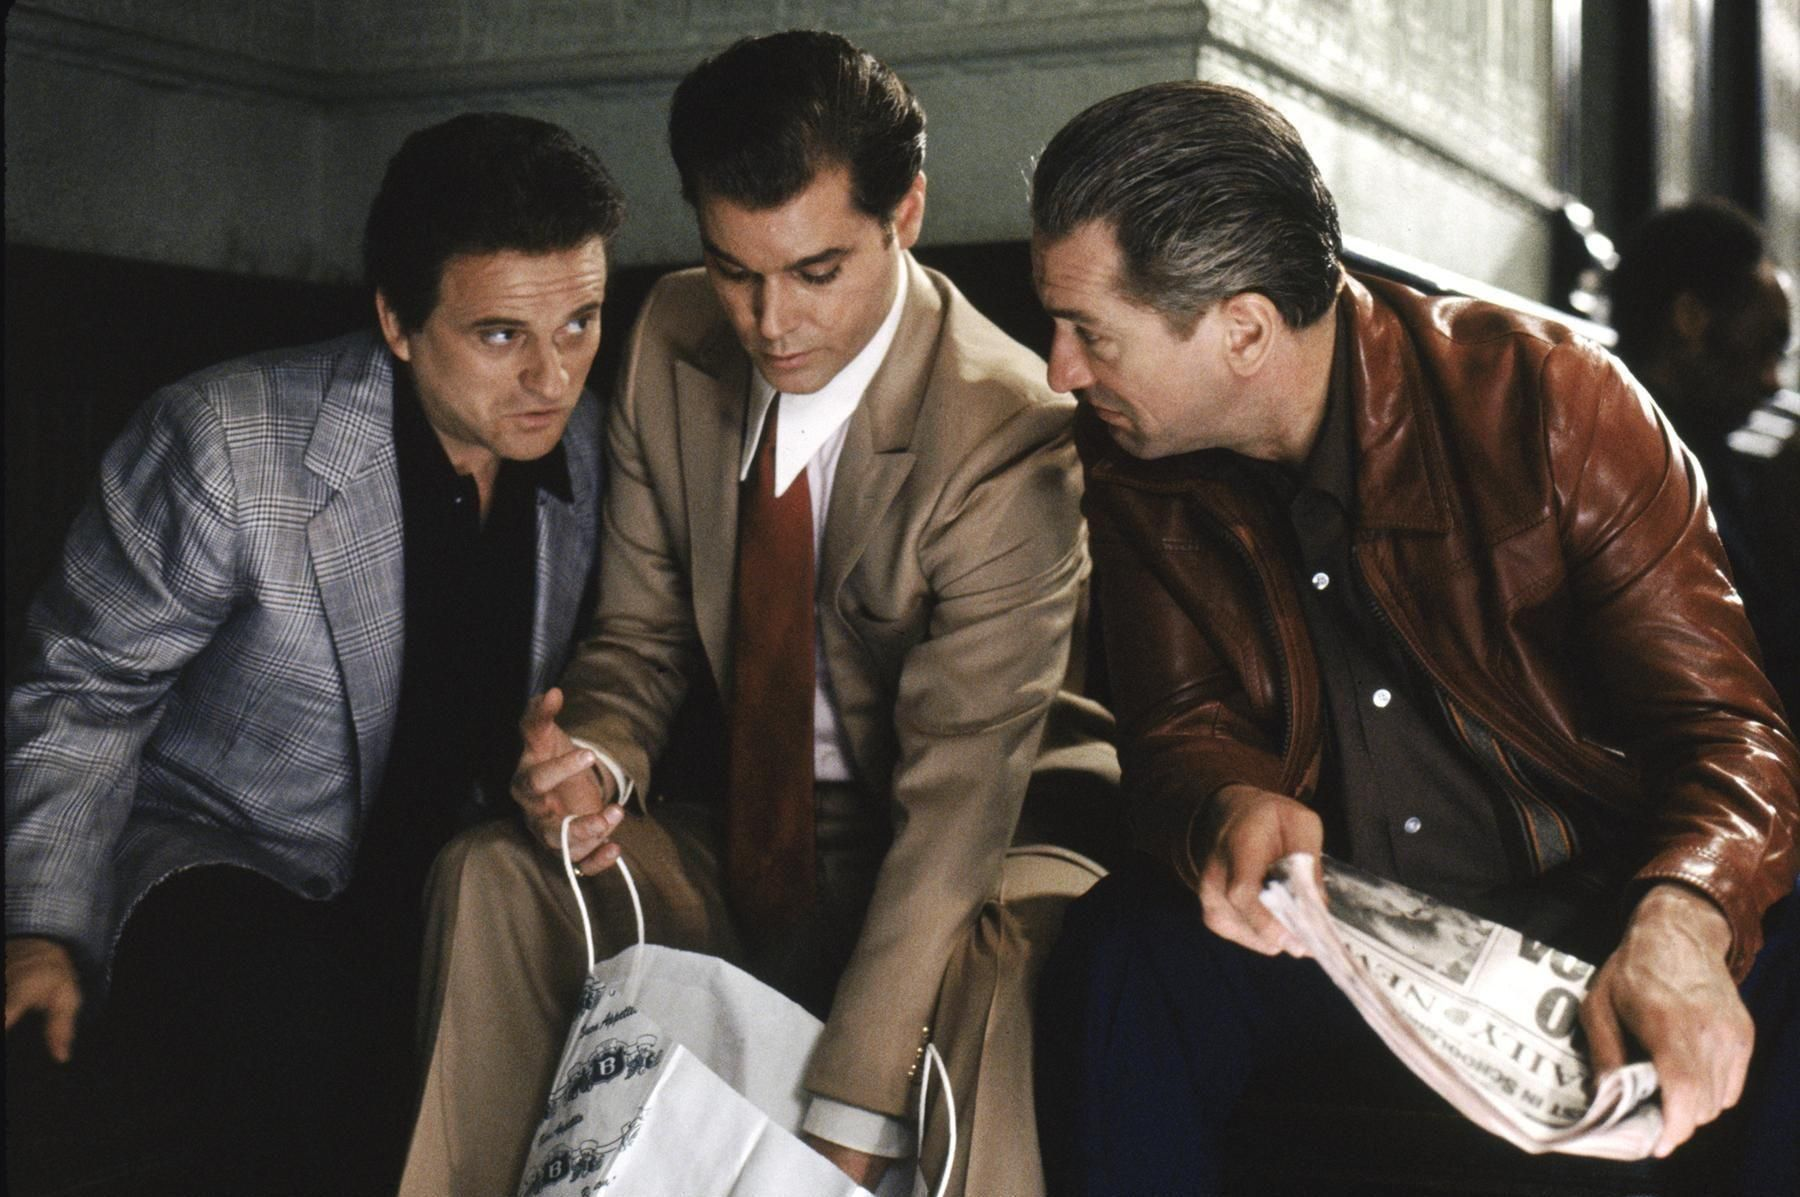 Joes Pesci, Ray Liotta and Robert De Niro in GoodFellas